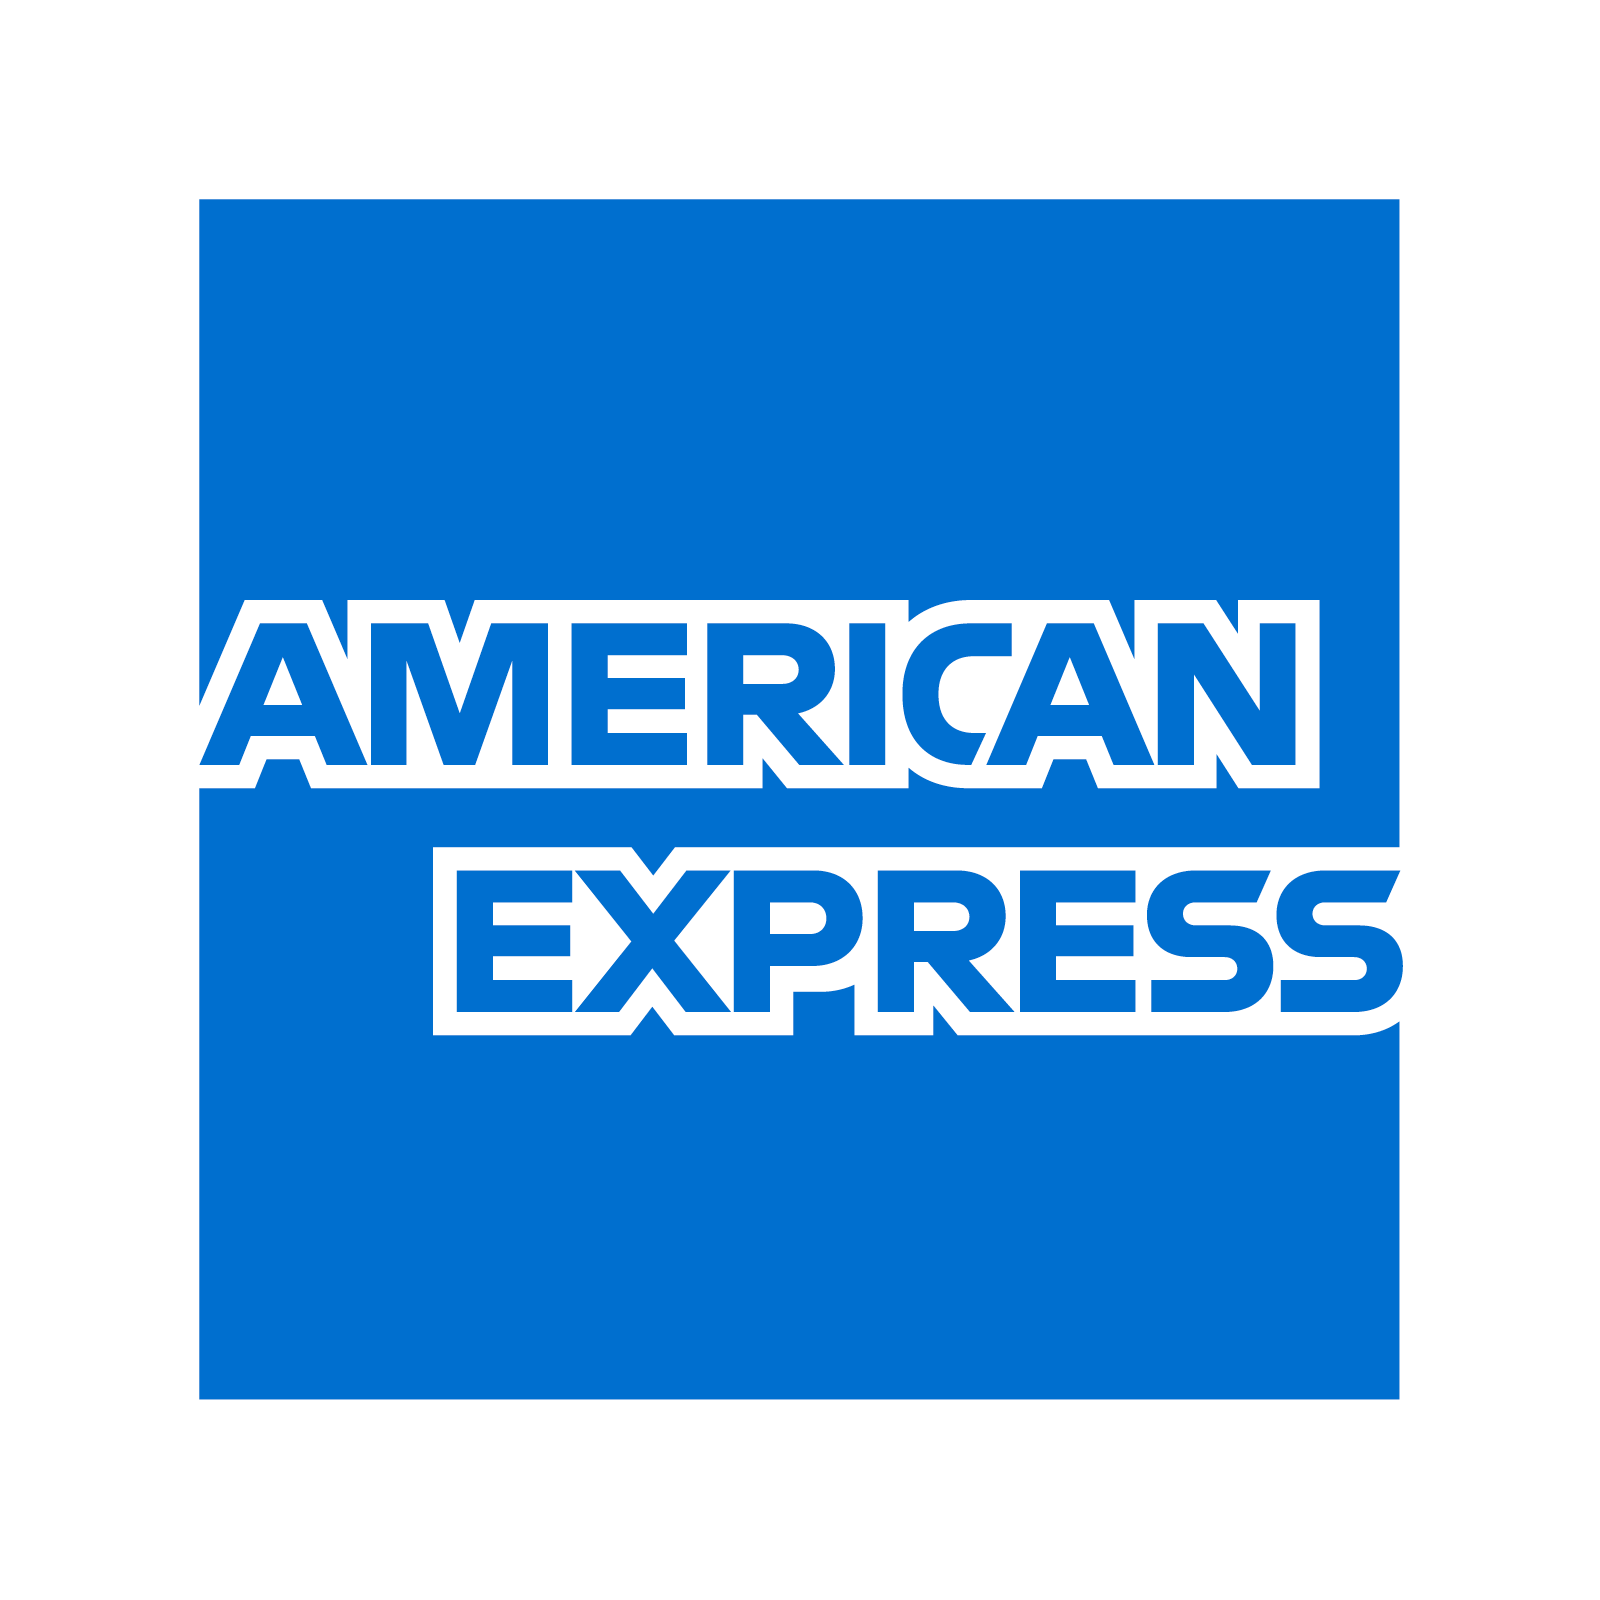 Amex Rebrand Blue Box